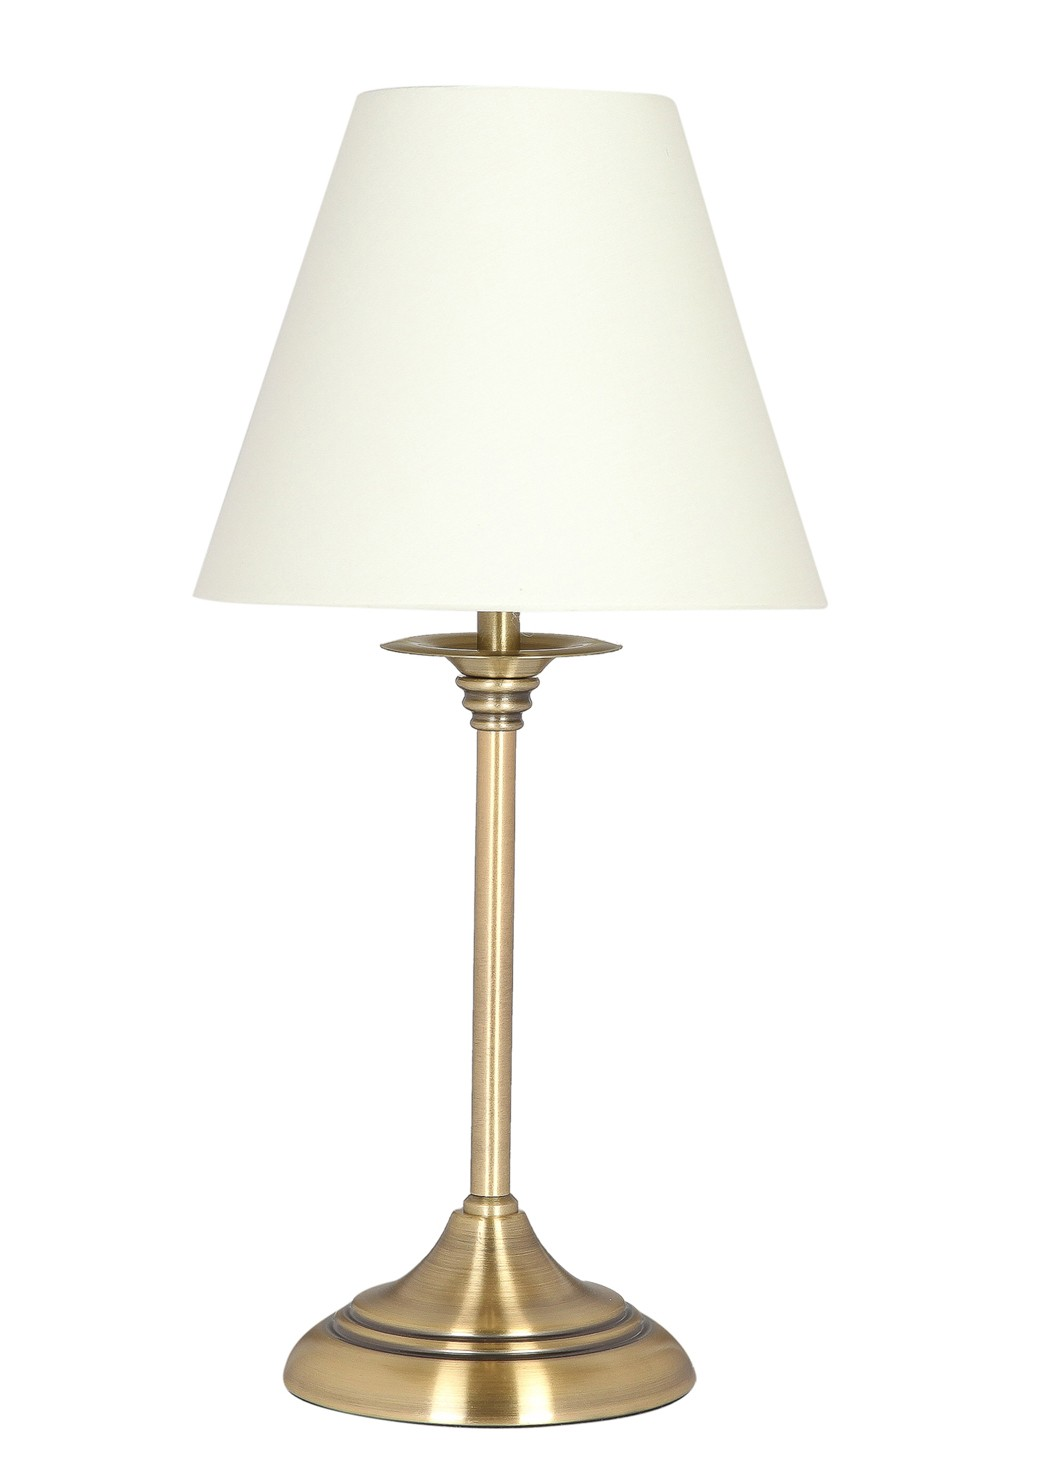 TOP 10 Best Modern Antique Brass Table Lamps